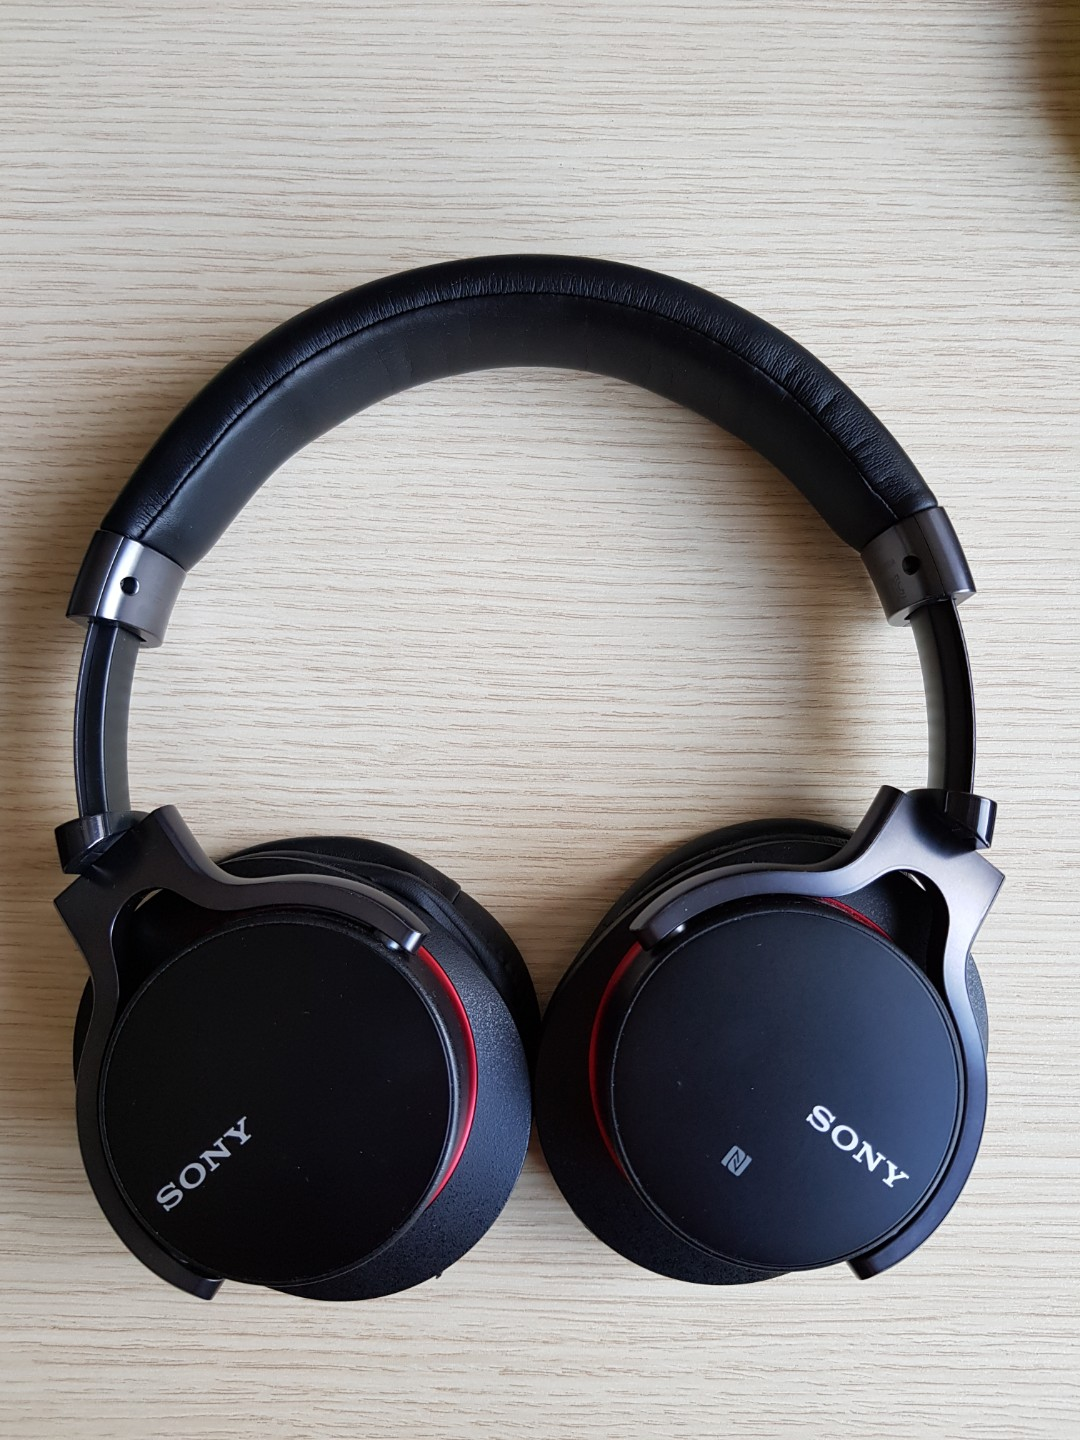 830f81c33d9 Used Sony mdr-1abt, Electronics, Audio on Carousell